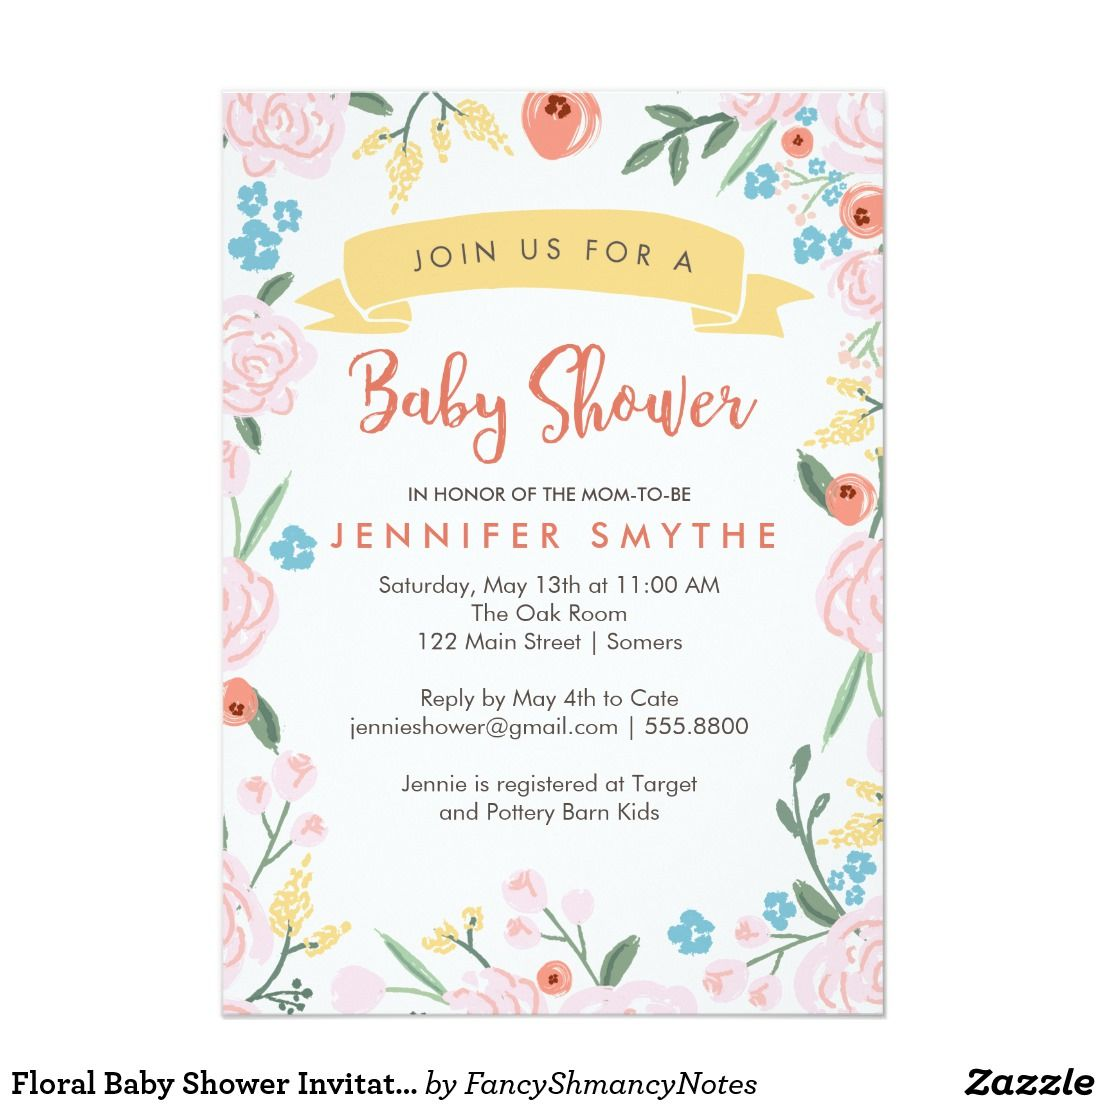 Floral baby shower invitation boy or girl card shower floral baby shower invitation boy or girl card a great invitation for baby shower for a boy or girl the neutral color flowers in peach green pink stopboris Choice Image